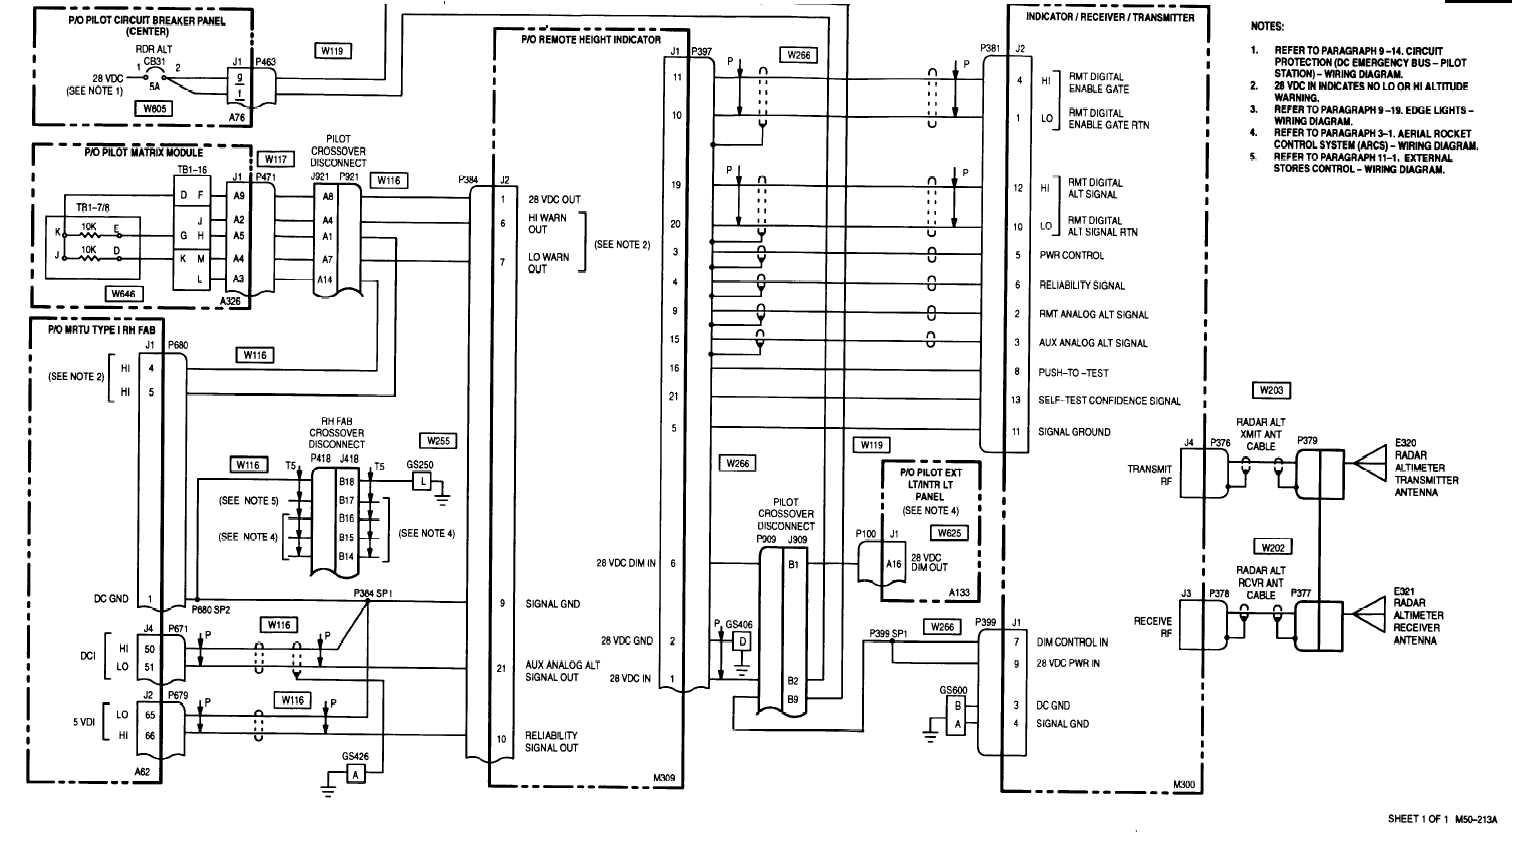 Rc Helicopter Wiring Diagram Just Another Blog Airplane Servo Diagrams For Library Rh 77 Akszer Eu Plane